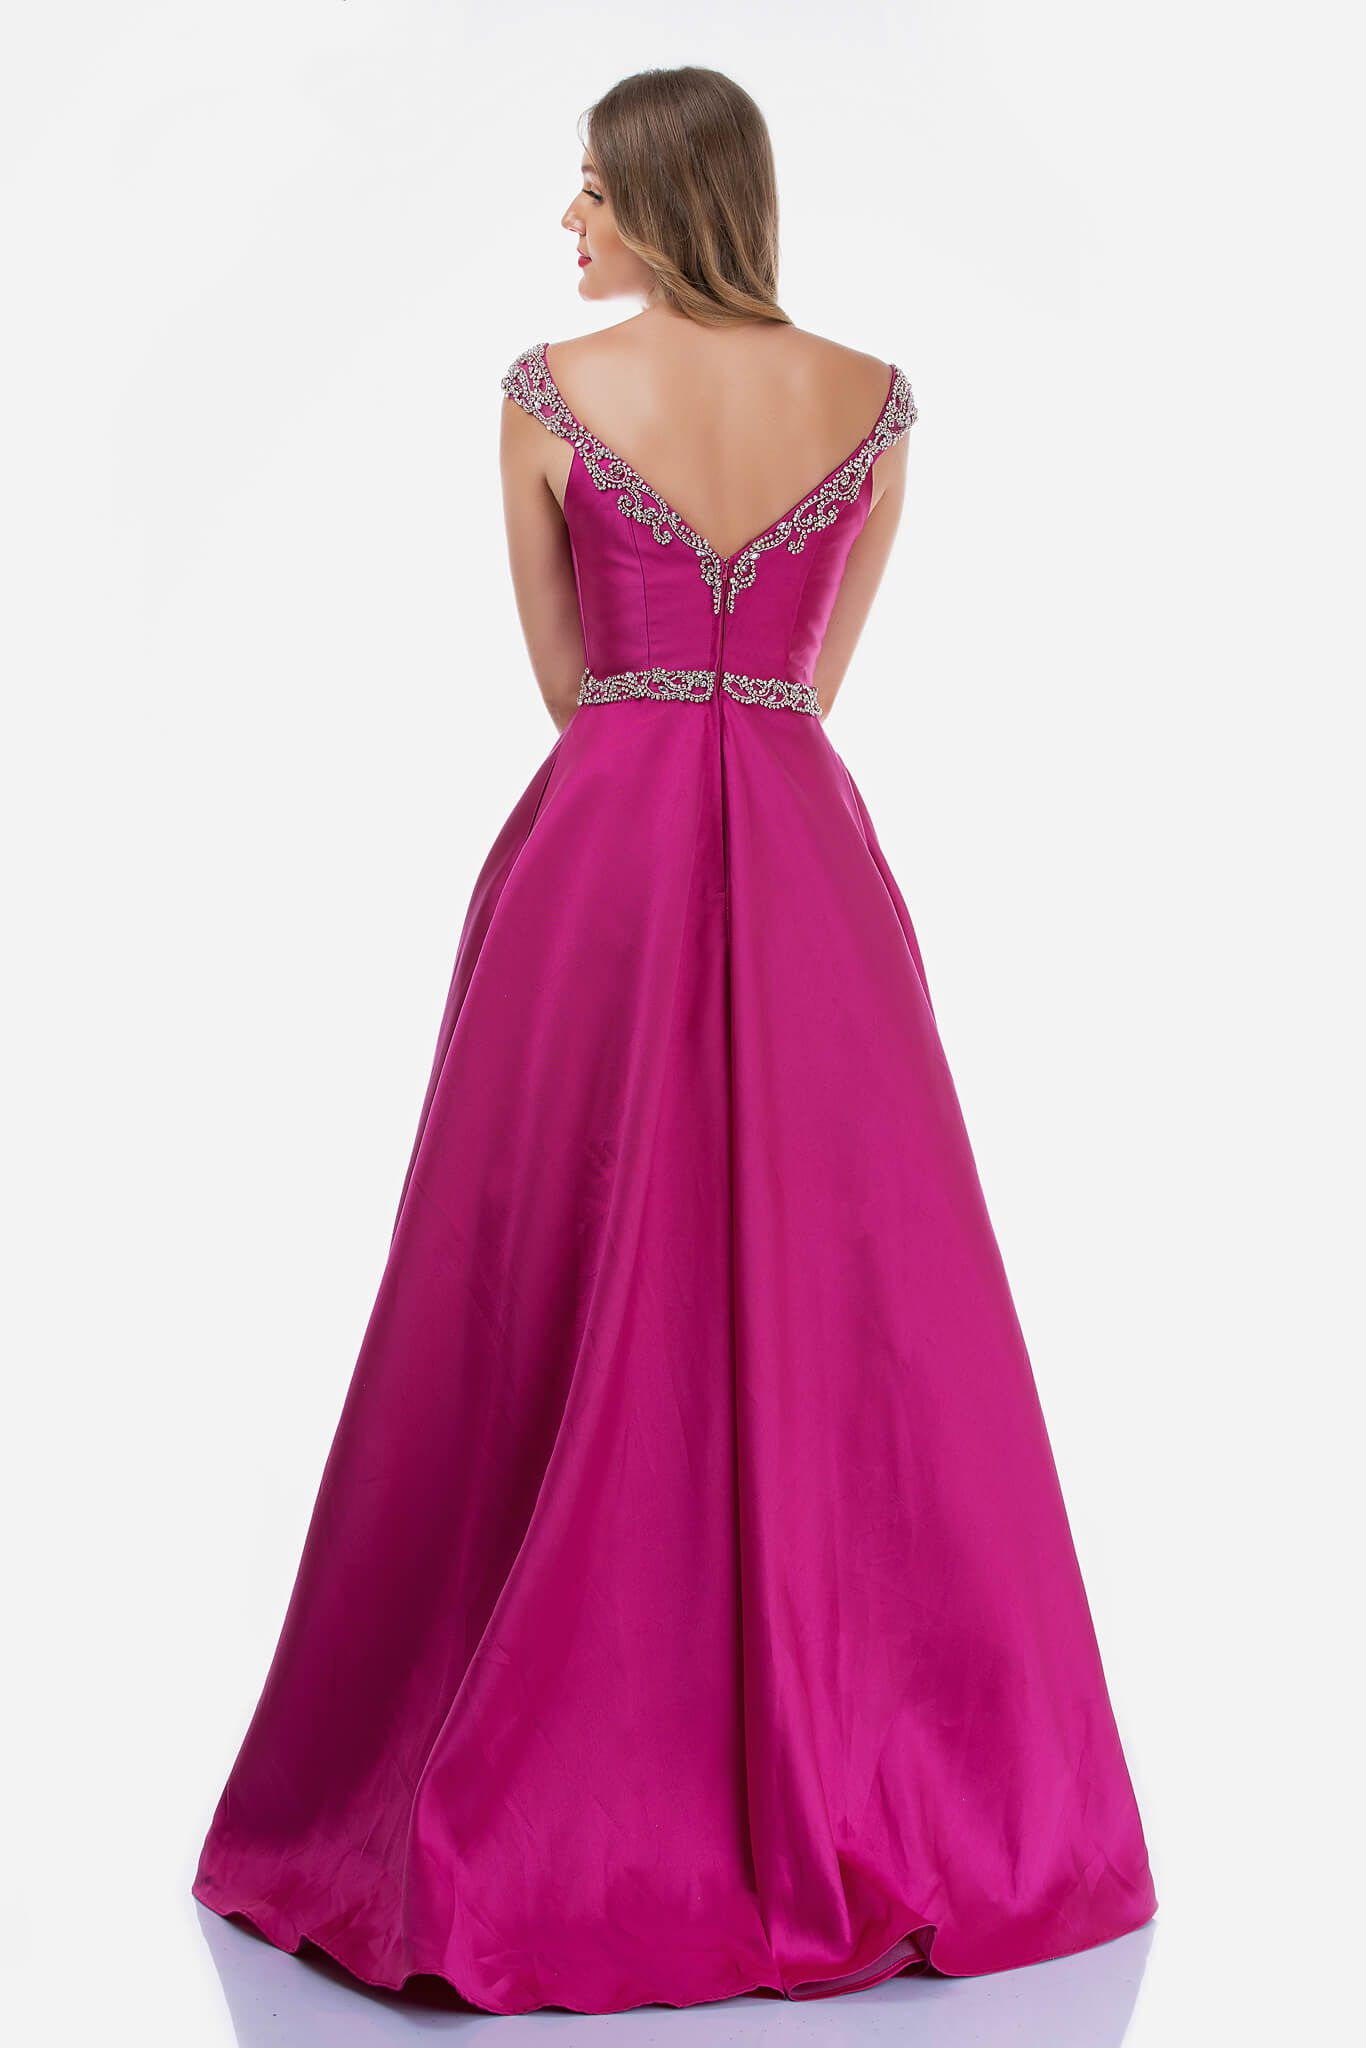 Style 2265 Nina Canacci Pink Size 14 Prom Ball gown on Queenly